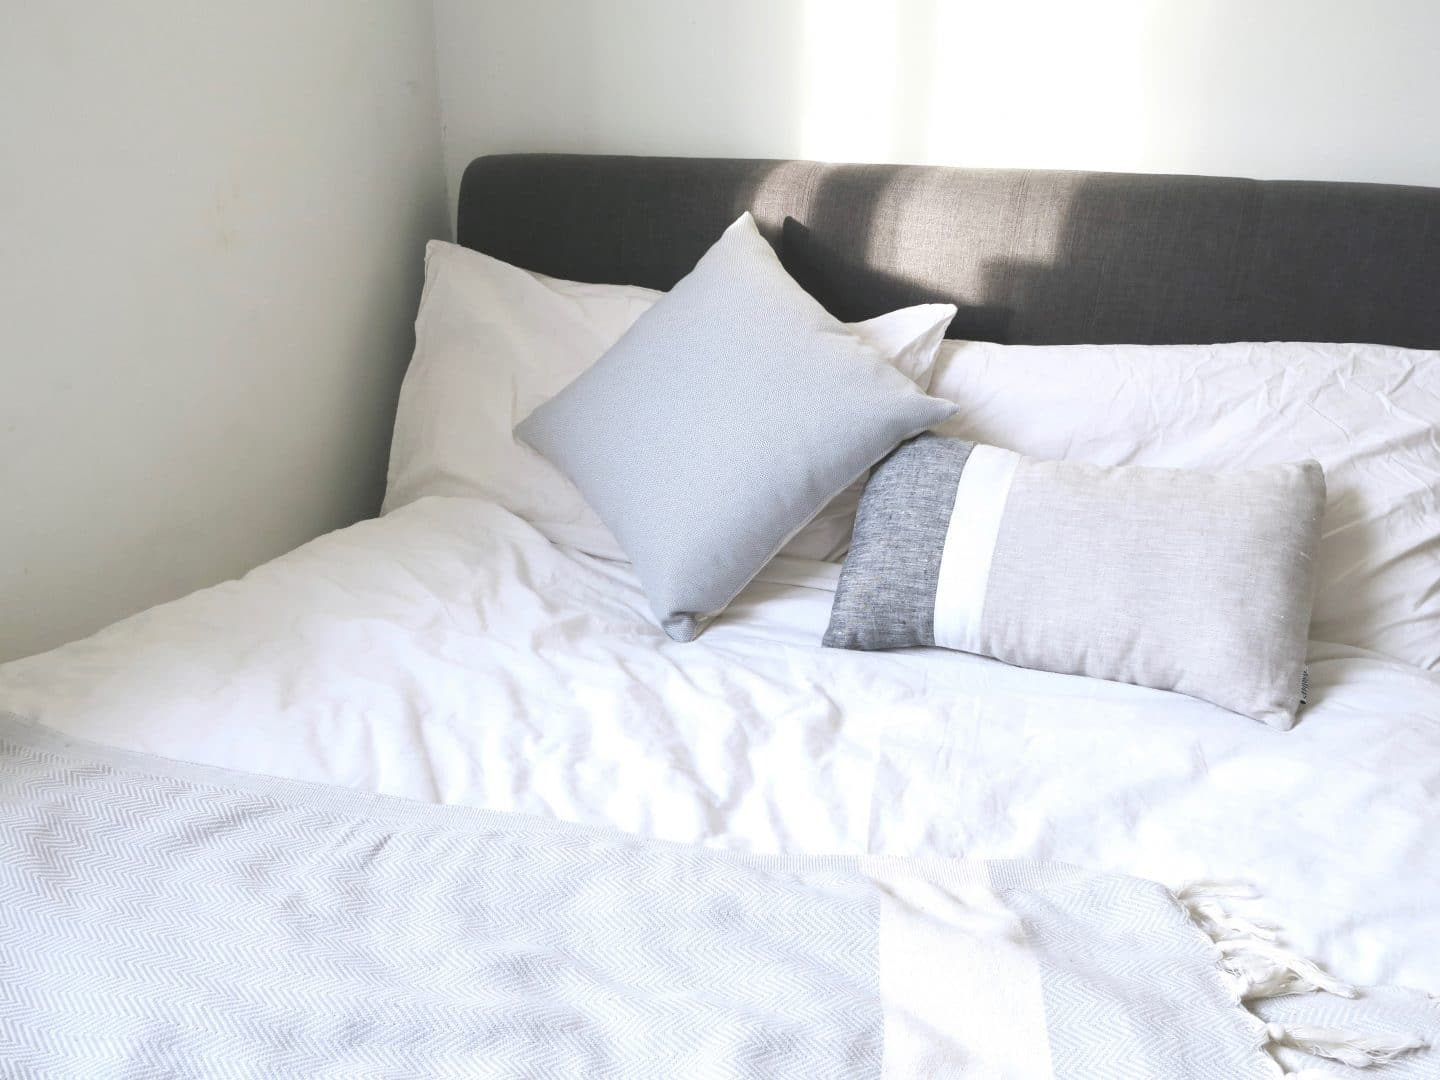 Ethically Made Bedding | Curiously Conscious